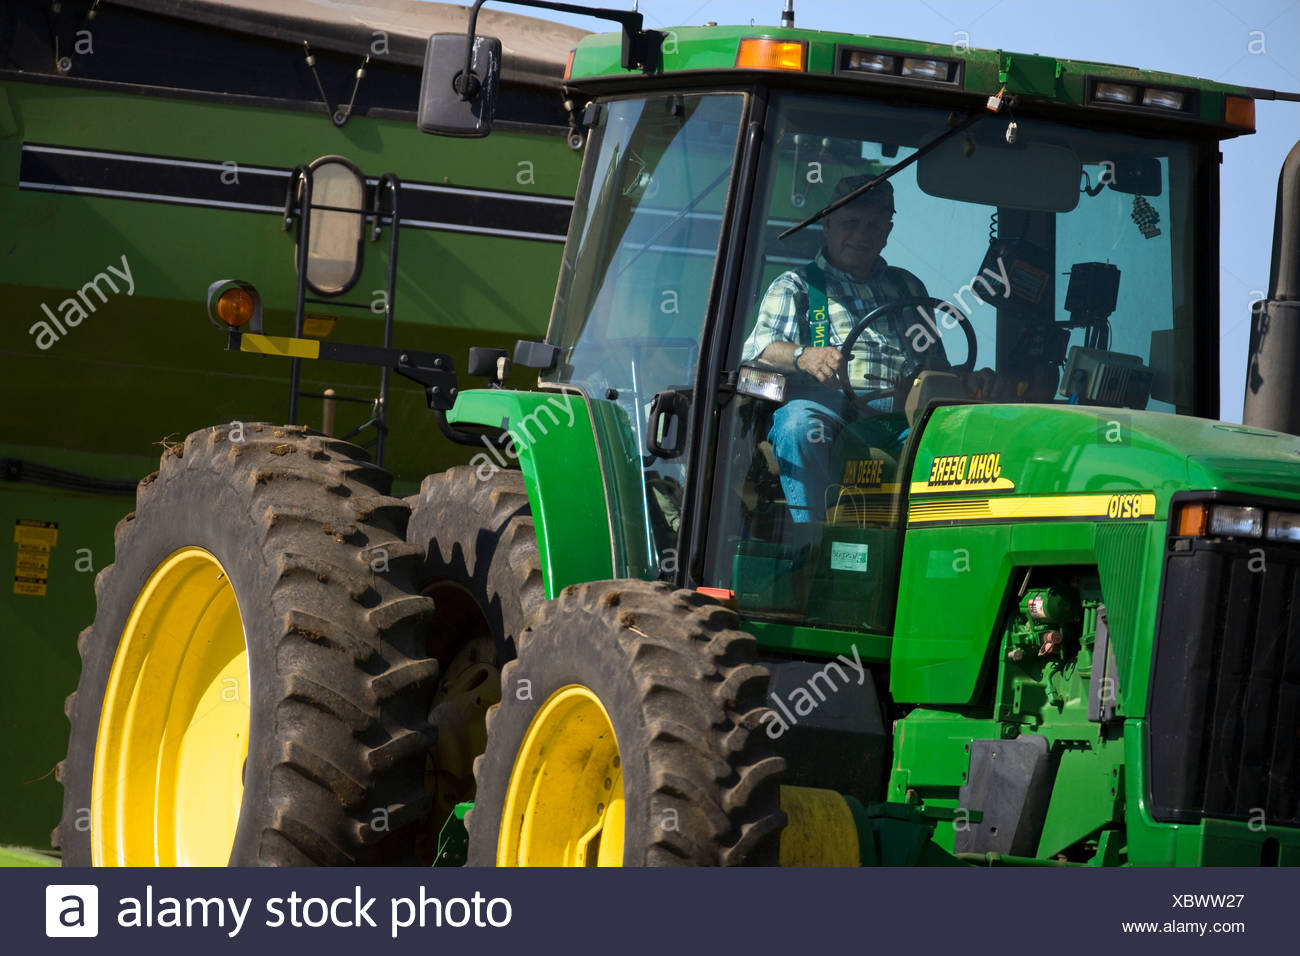 An elderly farmer sits in the cab of a tractor during the Autumn soybean harvest / near Northland, Minnesota, USA. - Stock Image